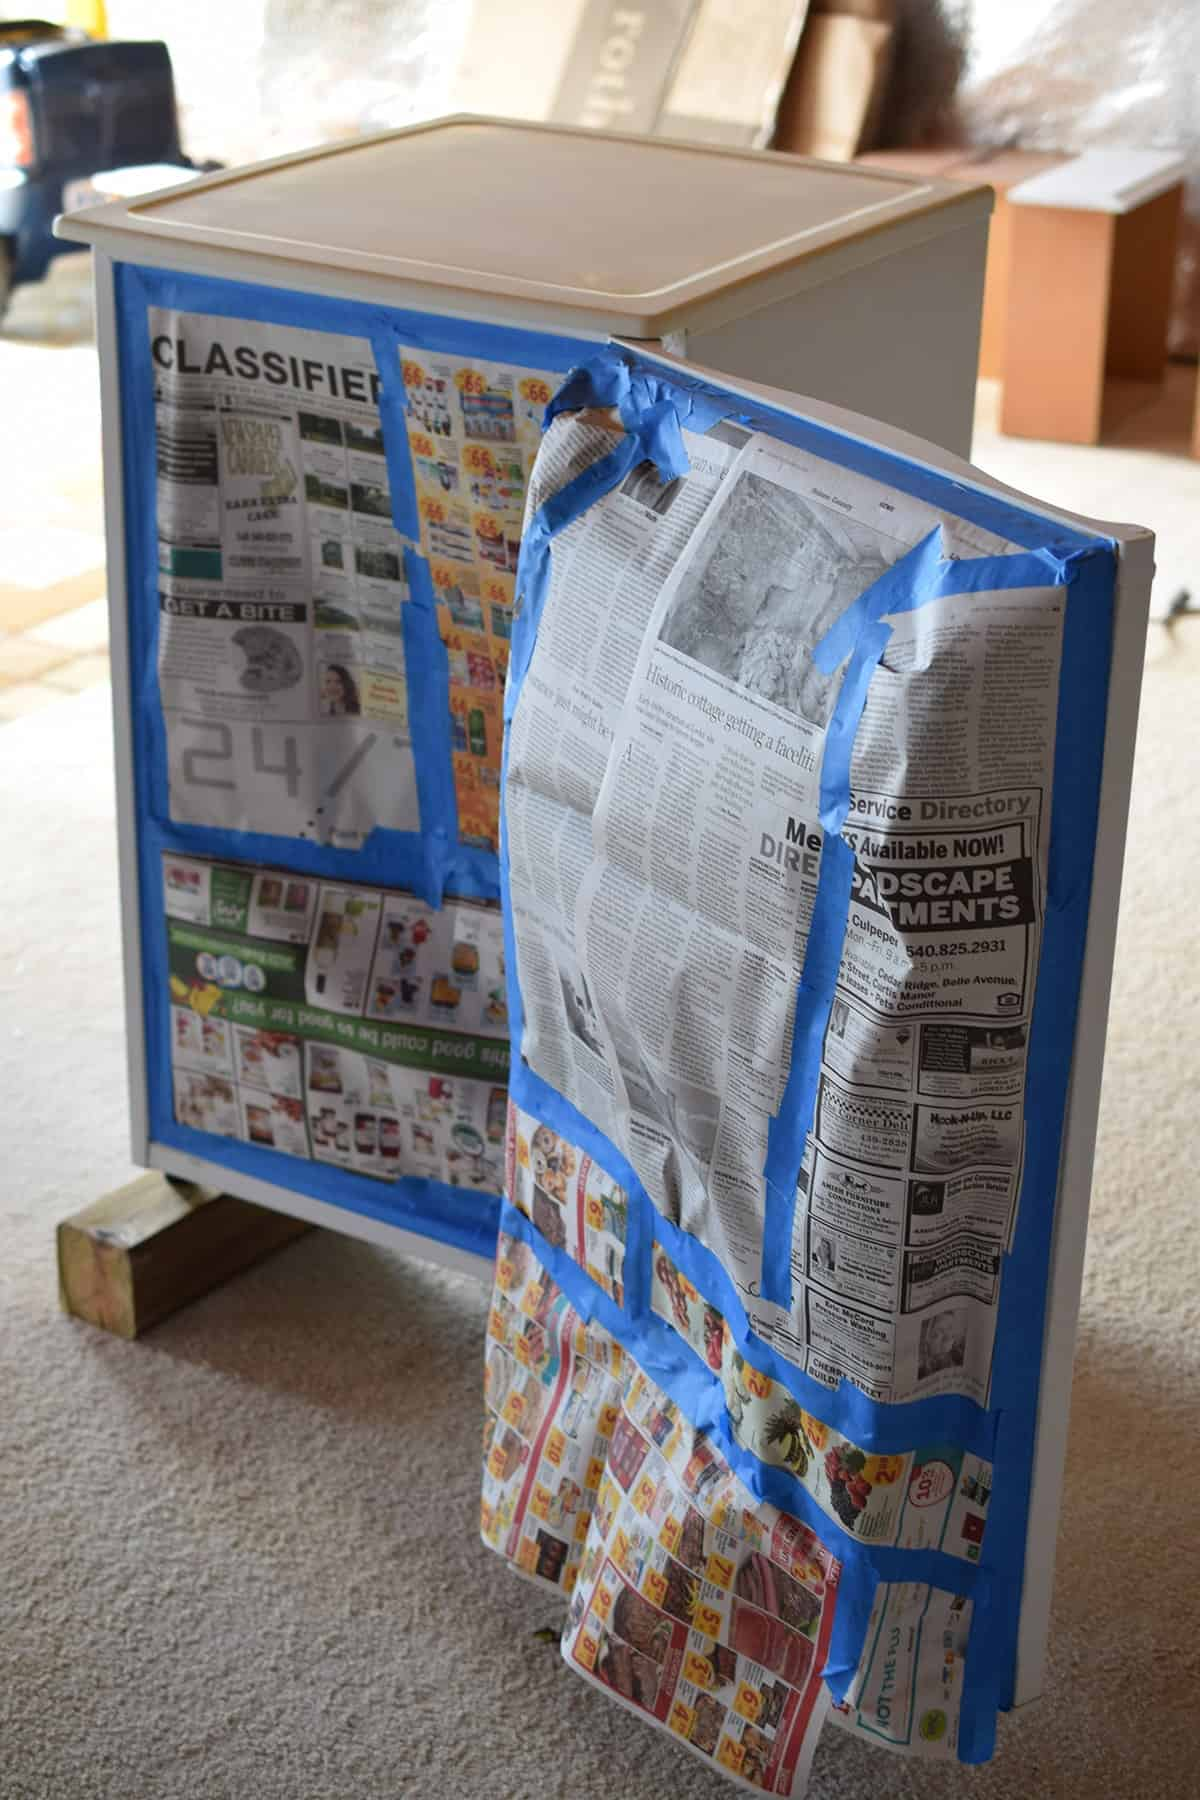 White mini fridge on wooden blocks, taped with newspaper in preparation for painting.